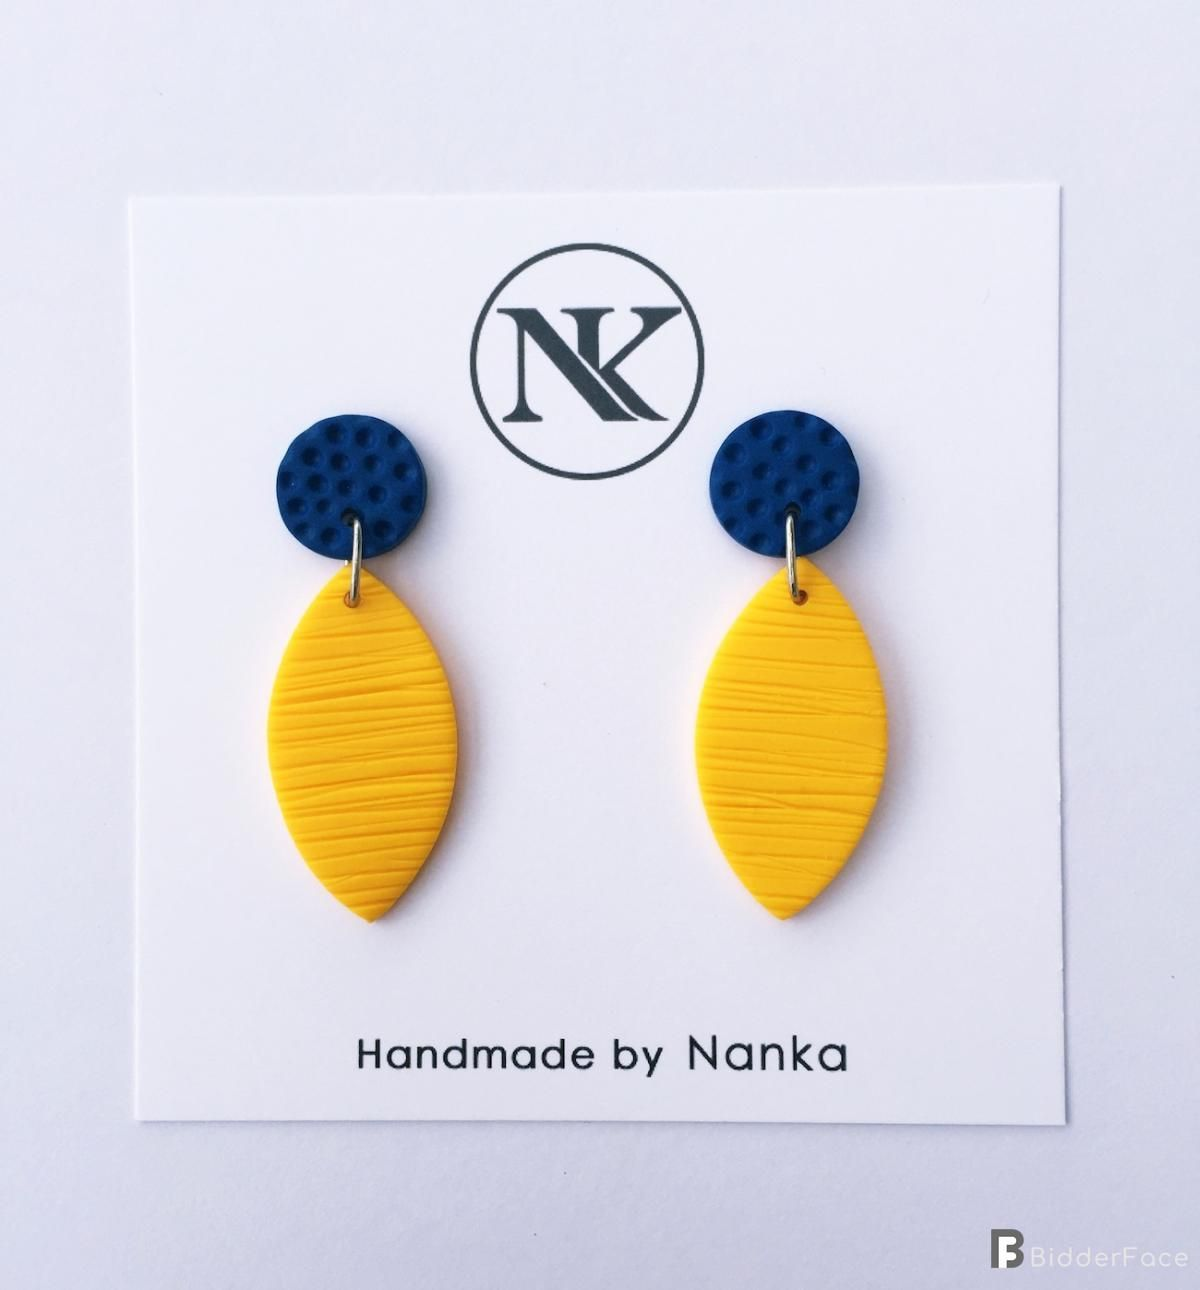 9296a7352 Handmade Polymer Clay Earrings - Minimalist Collection Lightweight earrings  made of polymer clay material. All metal parts are made of stainless steel.